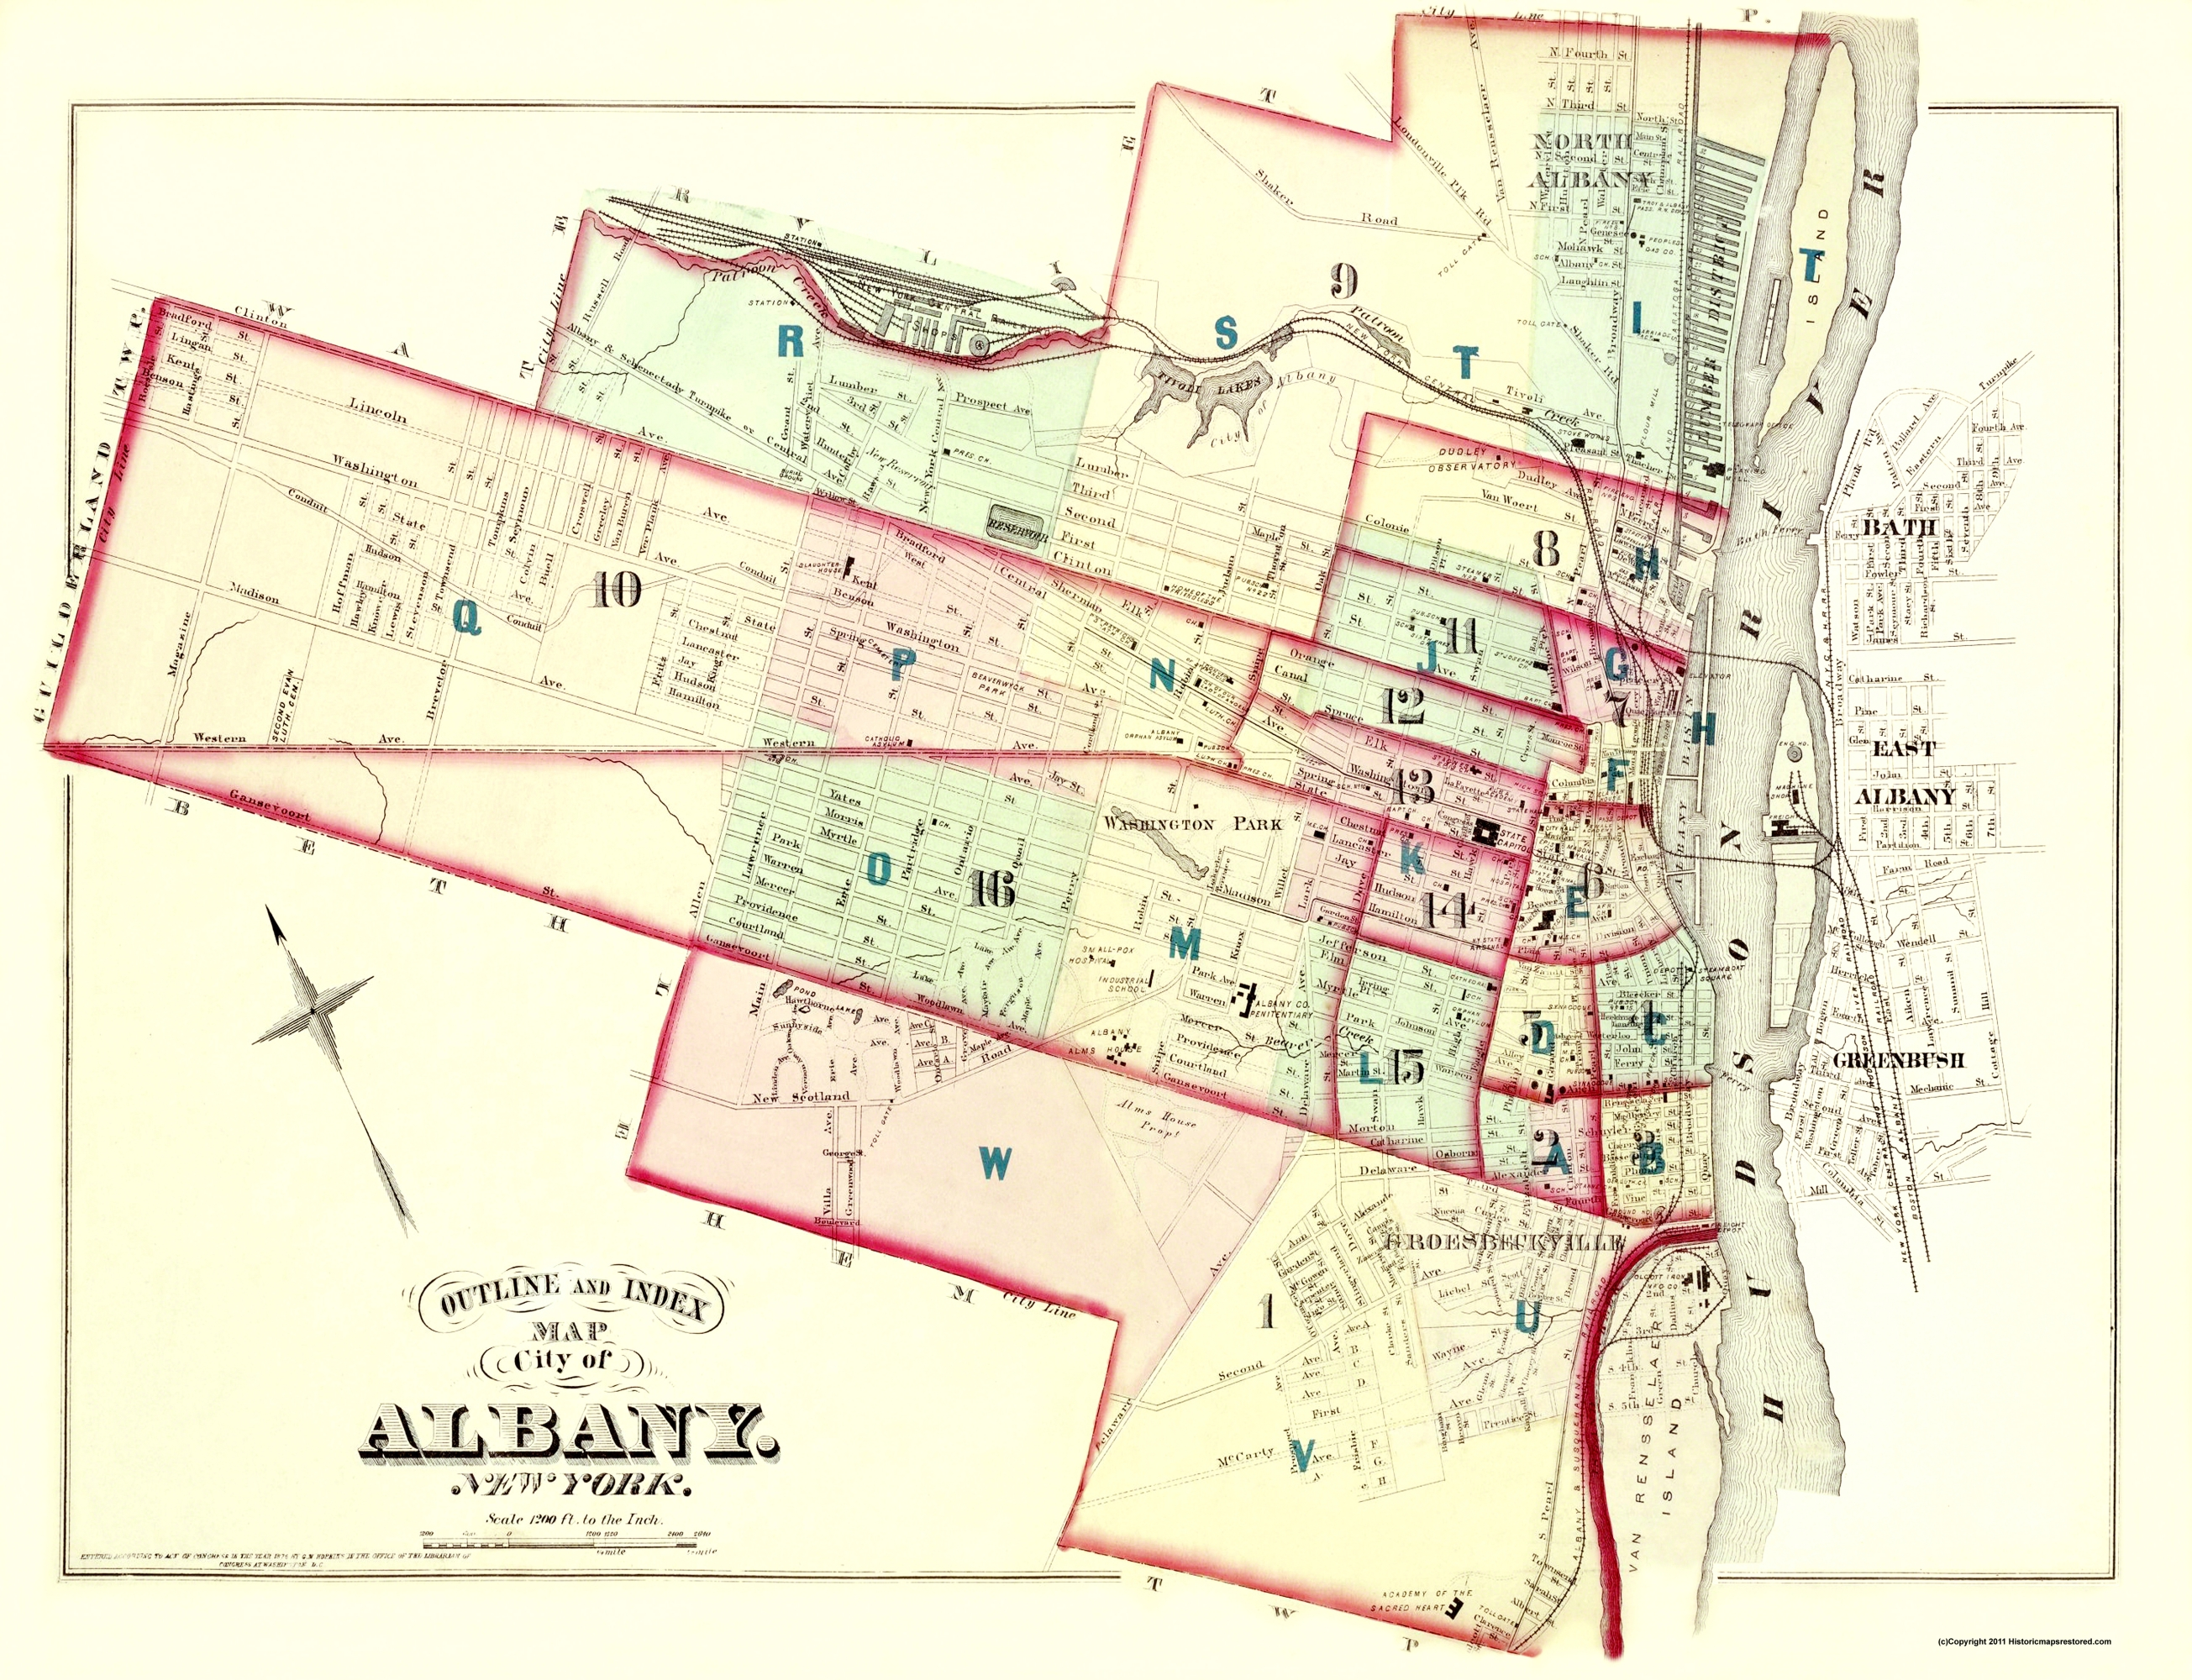 Old City Map - Albany New York Outline and Index - 1876